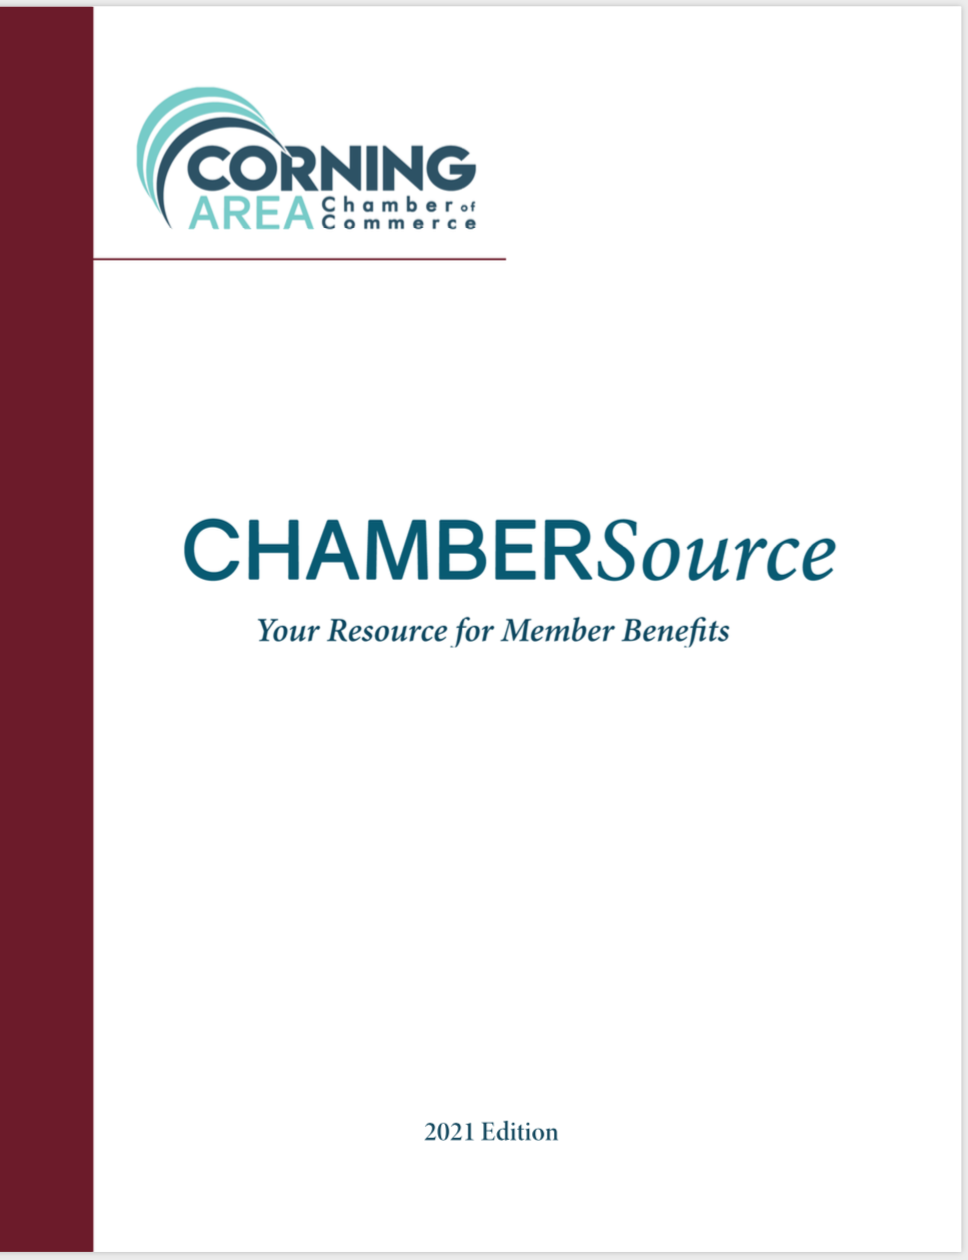 Chamber Source - Corning Area Chamber of Commerce